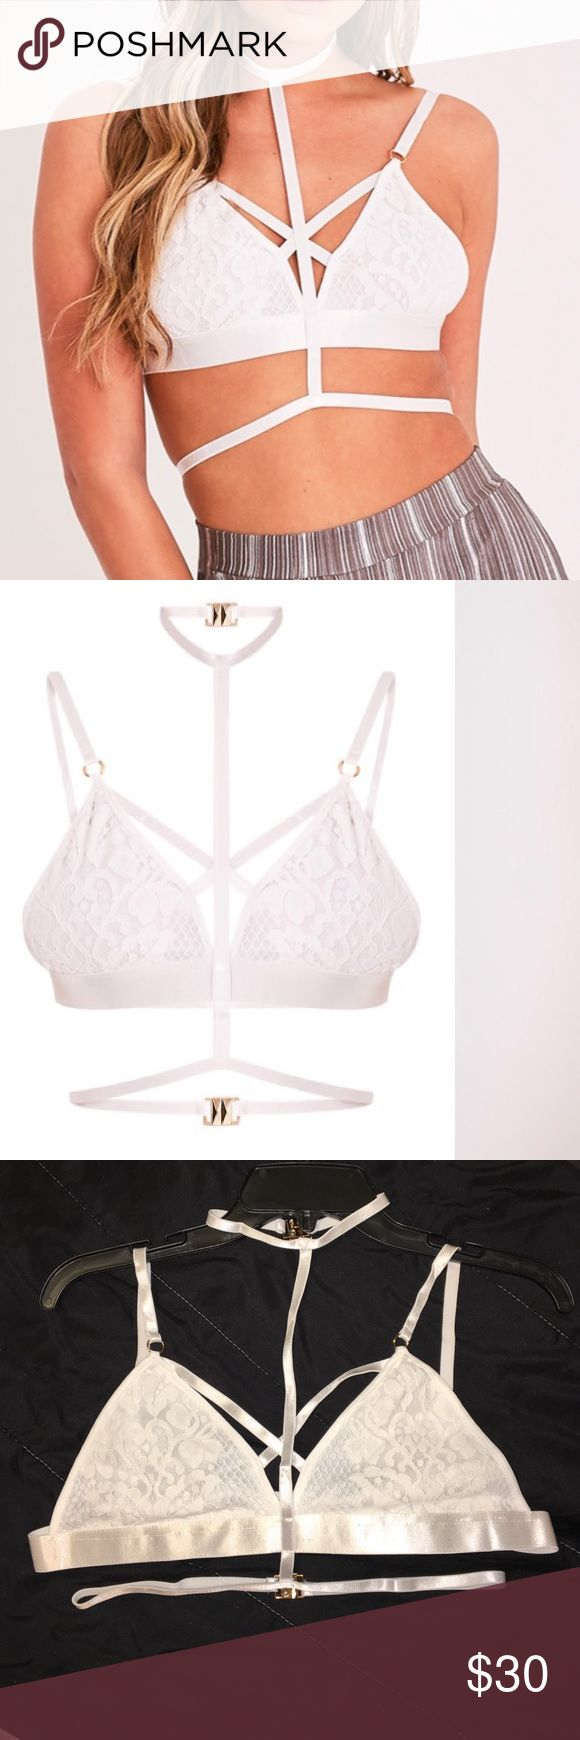 White harness lace bralet White harness lace bralet. US size 10/ UK size 14 (large) fabric 100% polyester. Tried on but never worn out. pretty little thing Intimates & Sleepwear Bras